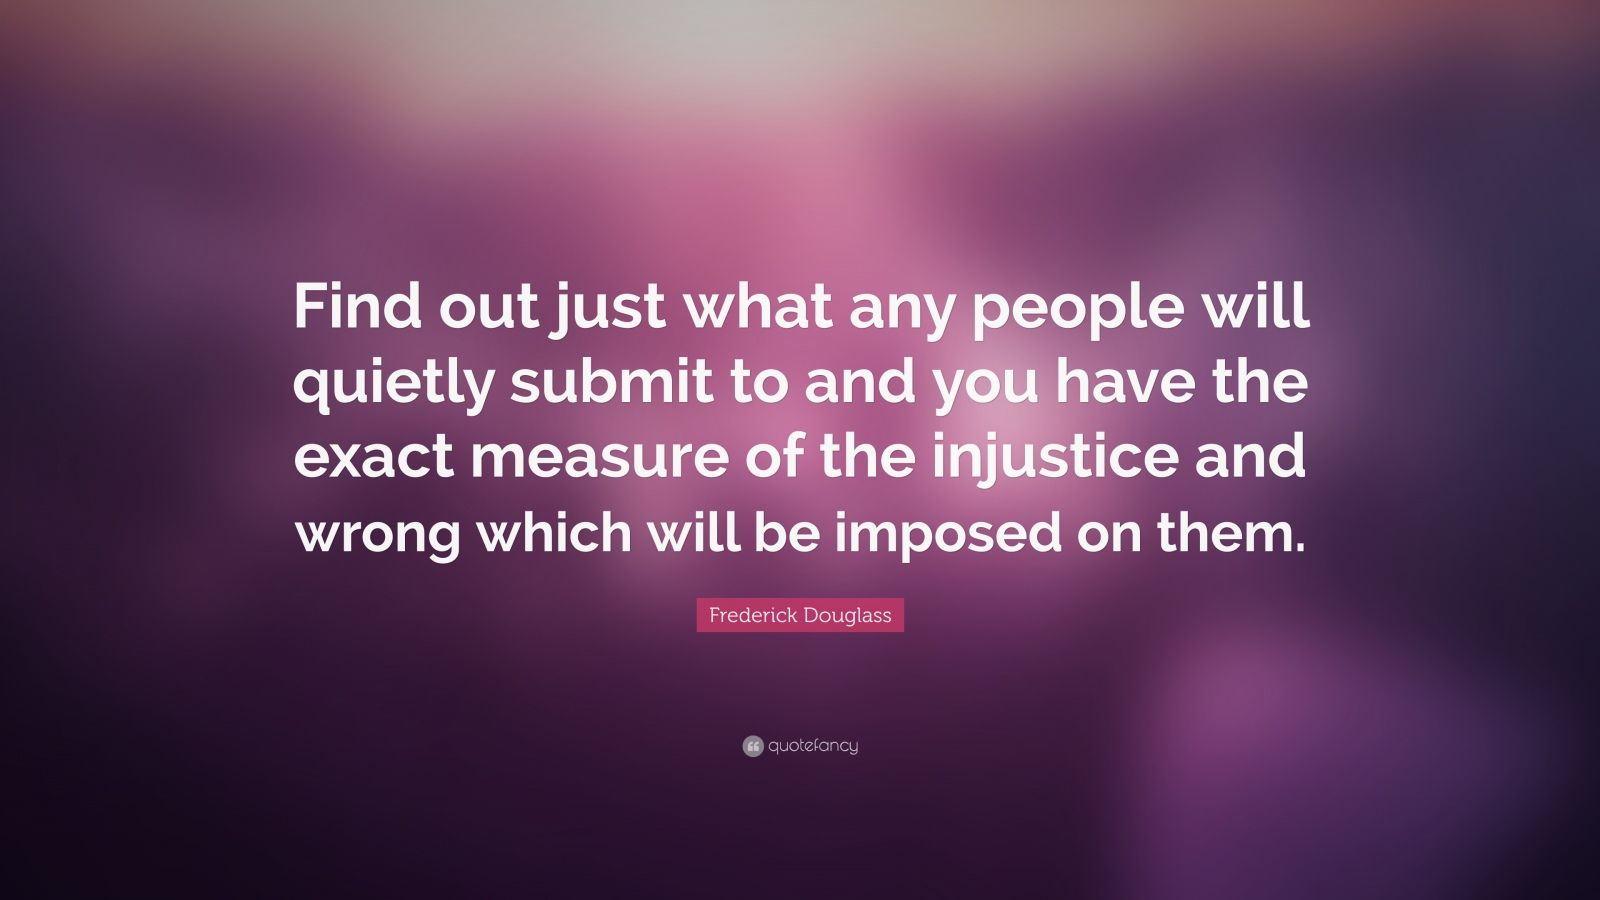 """Frederick Douglass Quote: """"Find out just what any people will quietly submit to and you have the exact measure of the injustice and wrong which will be imposed on them."""""""